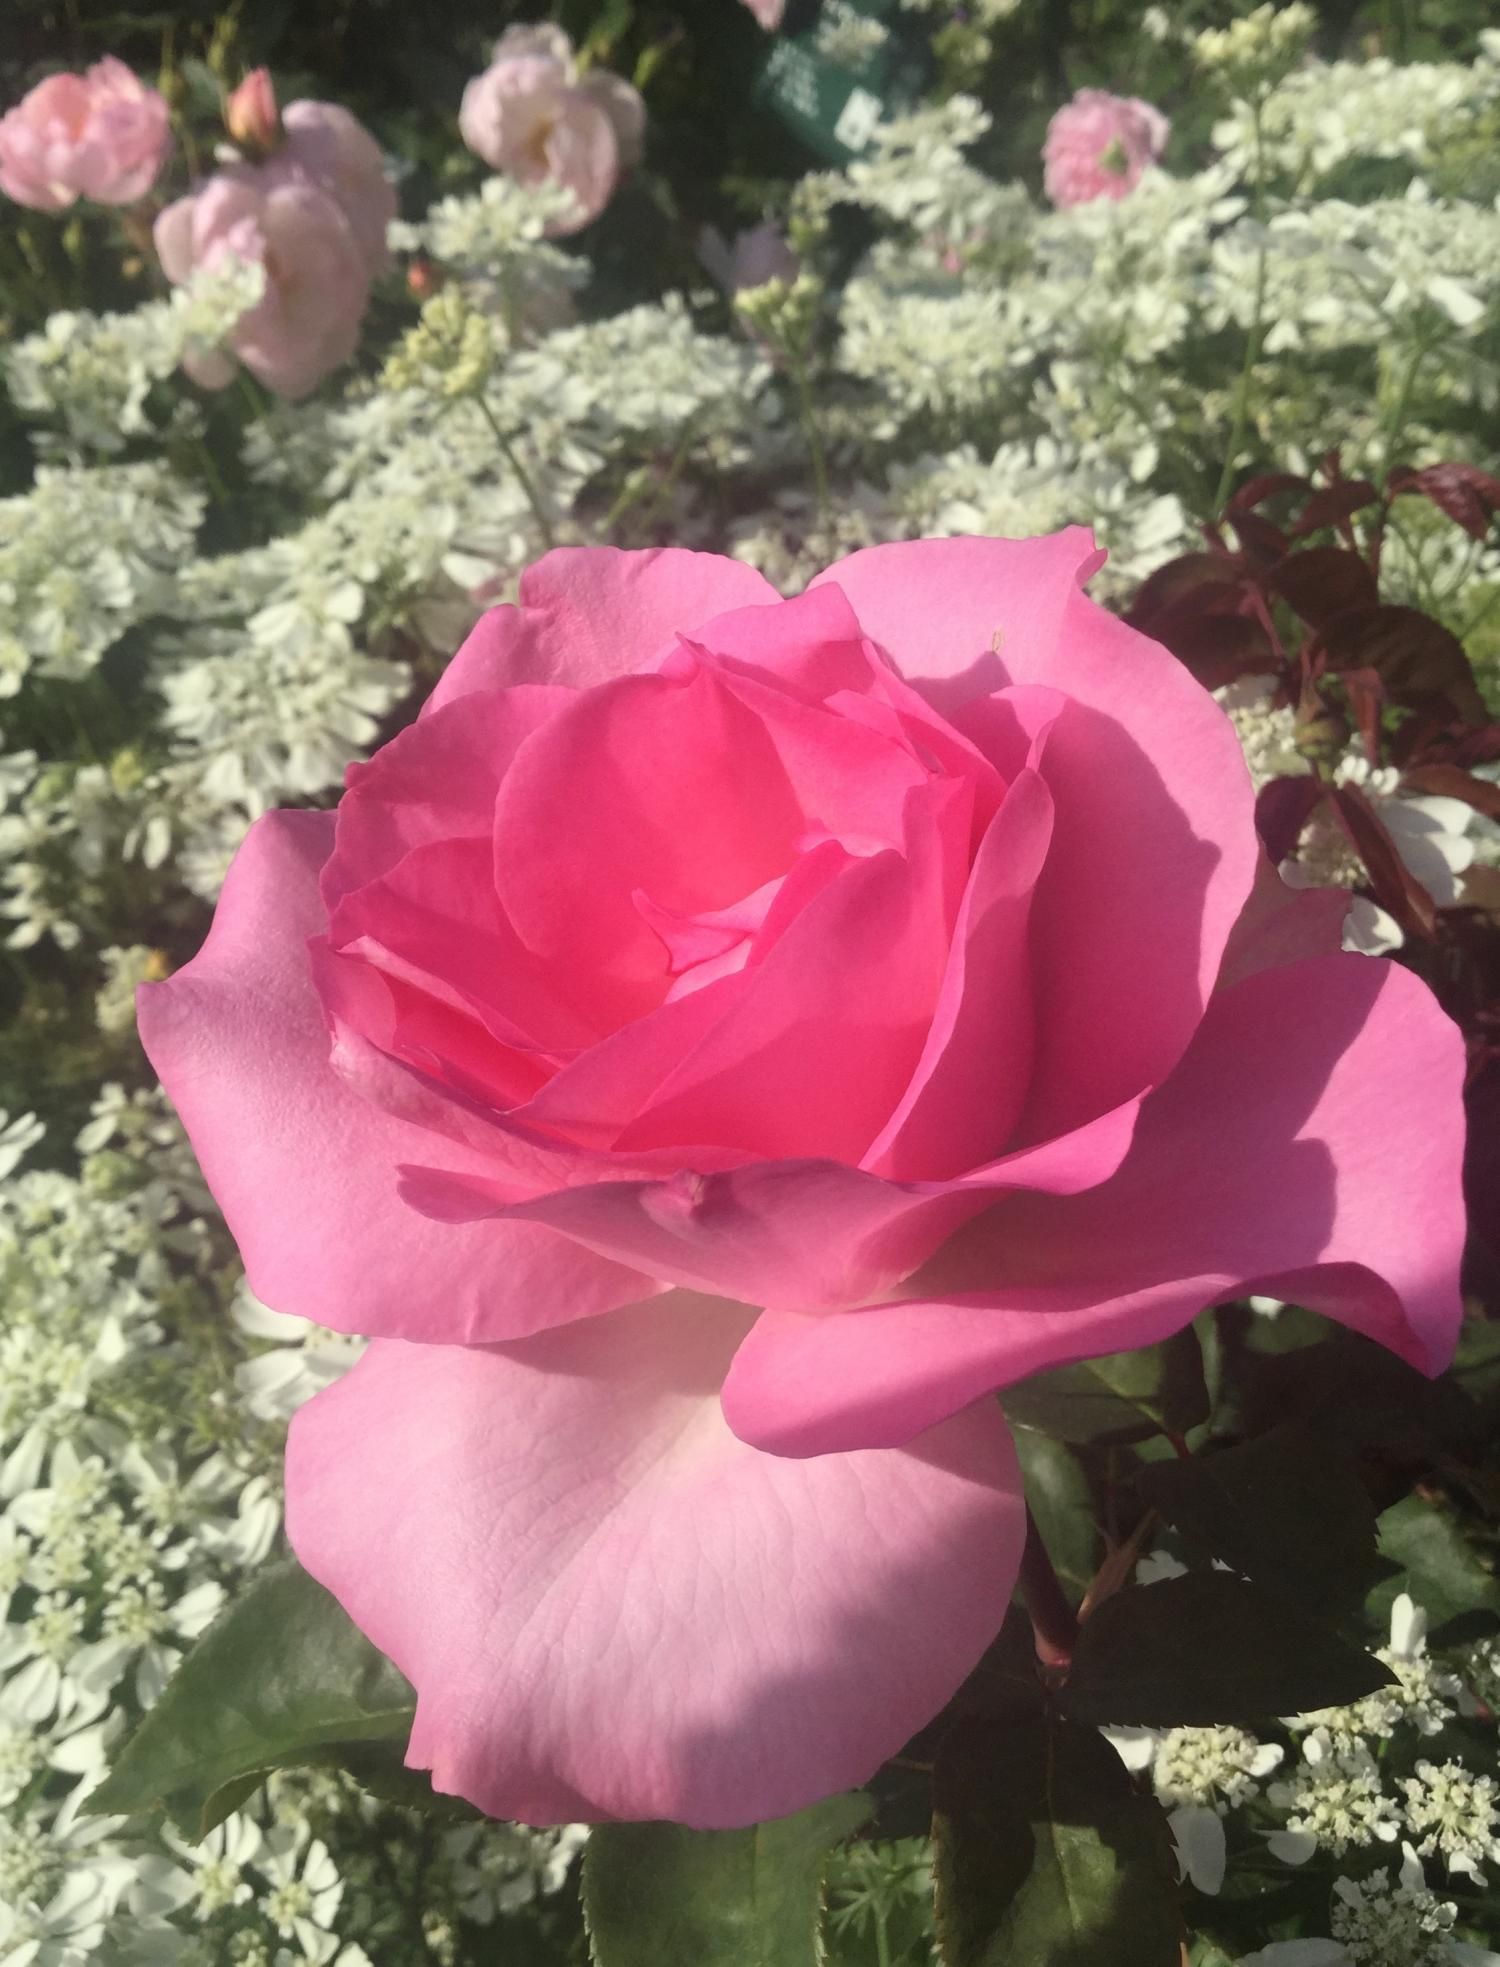 Rose which colors incense Rose garden of the rose four seasons of fascination